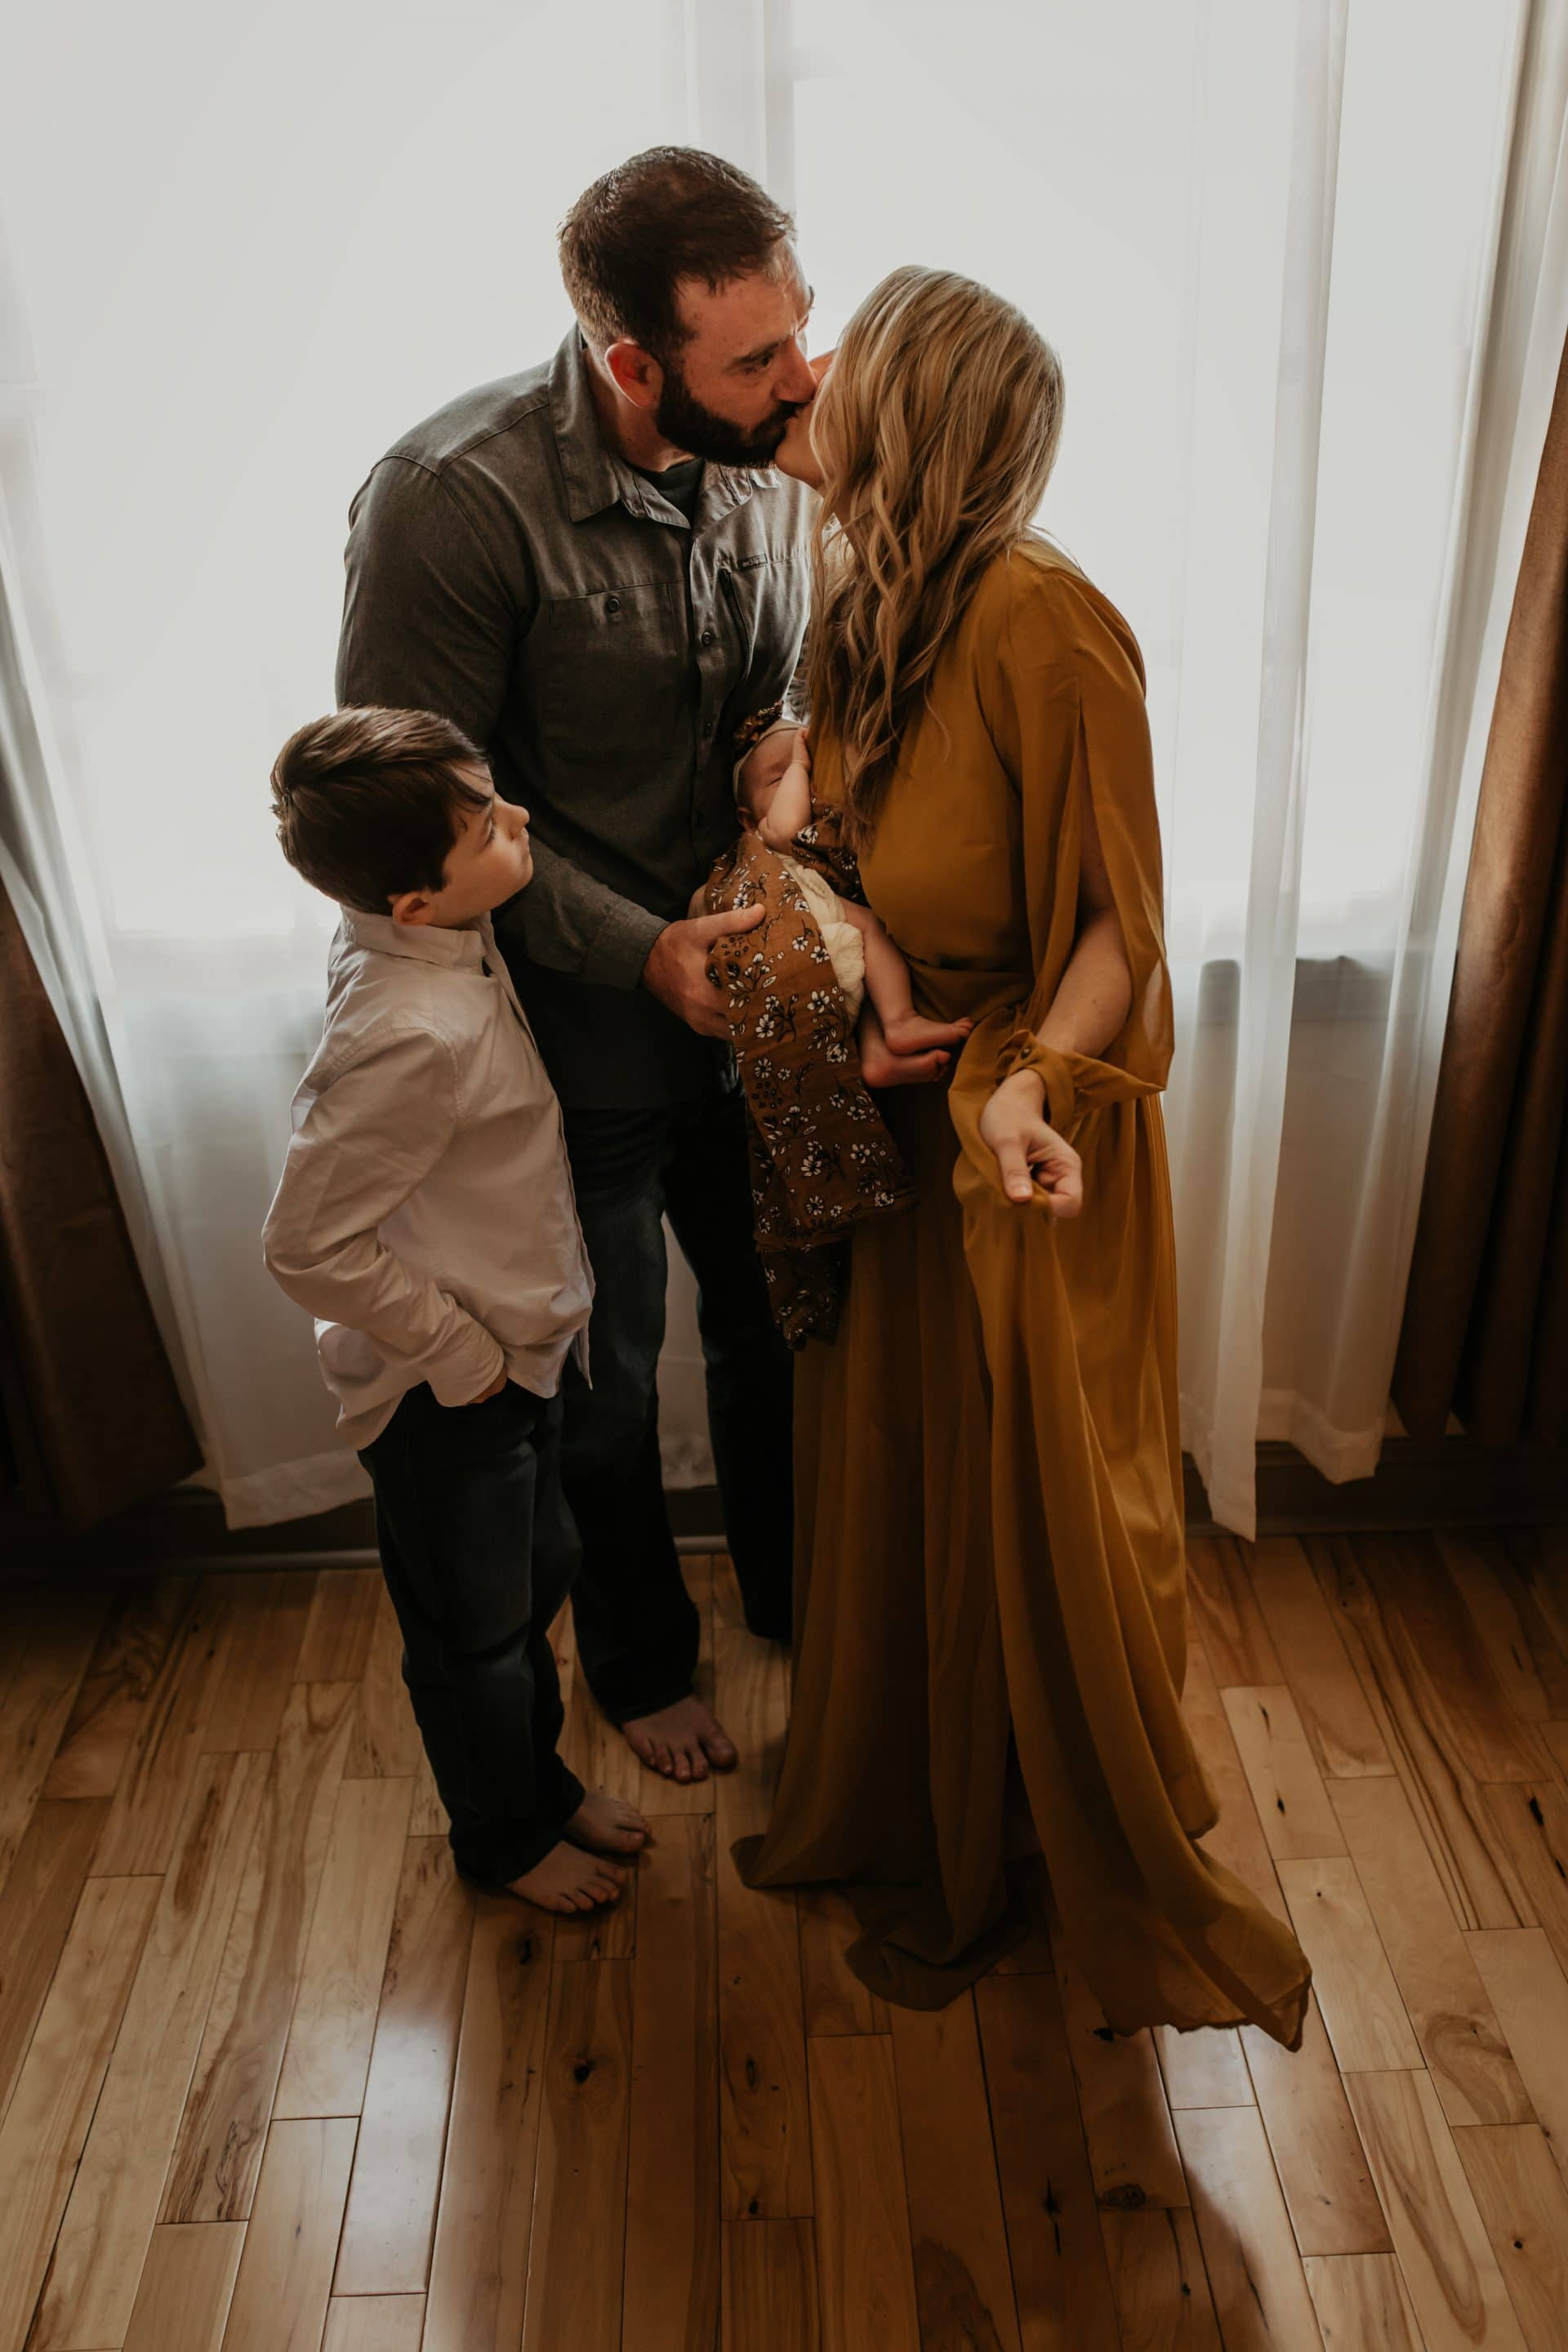 Family portraiture from Jenny Leigh Smith photography